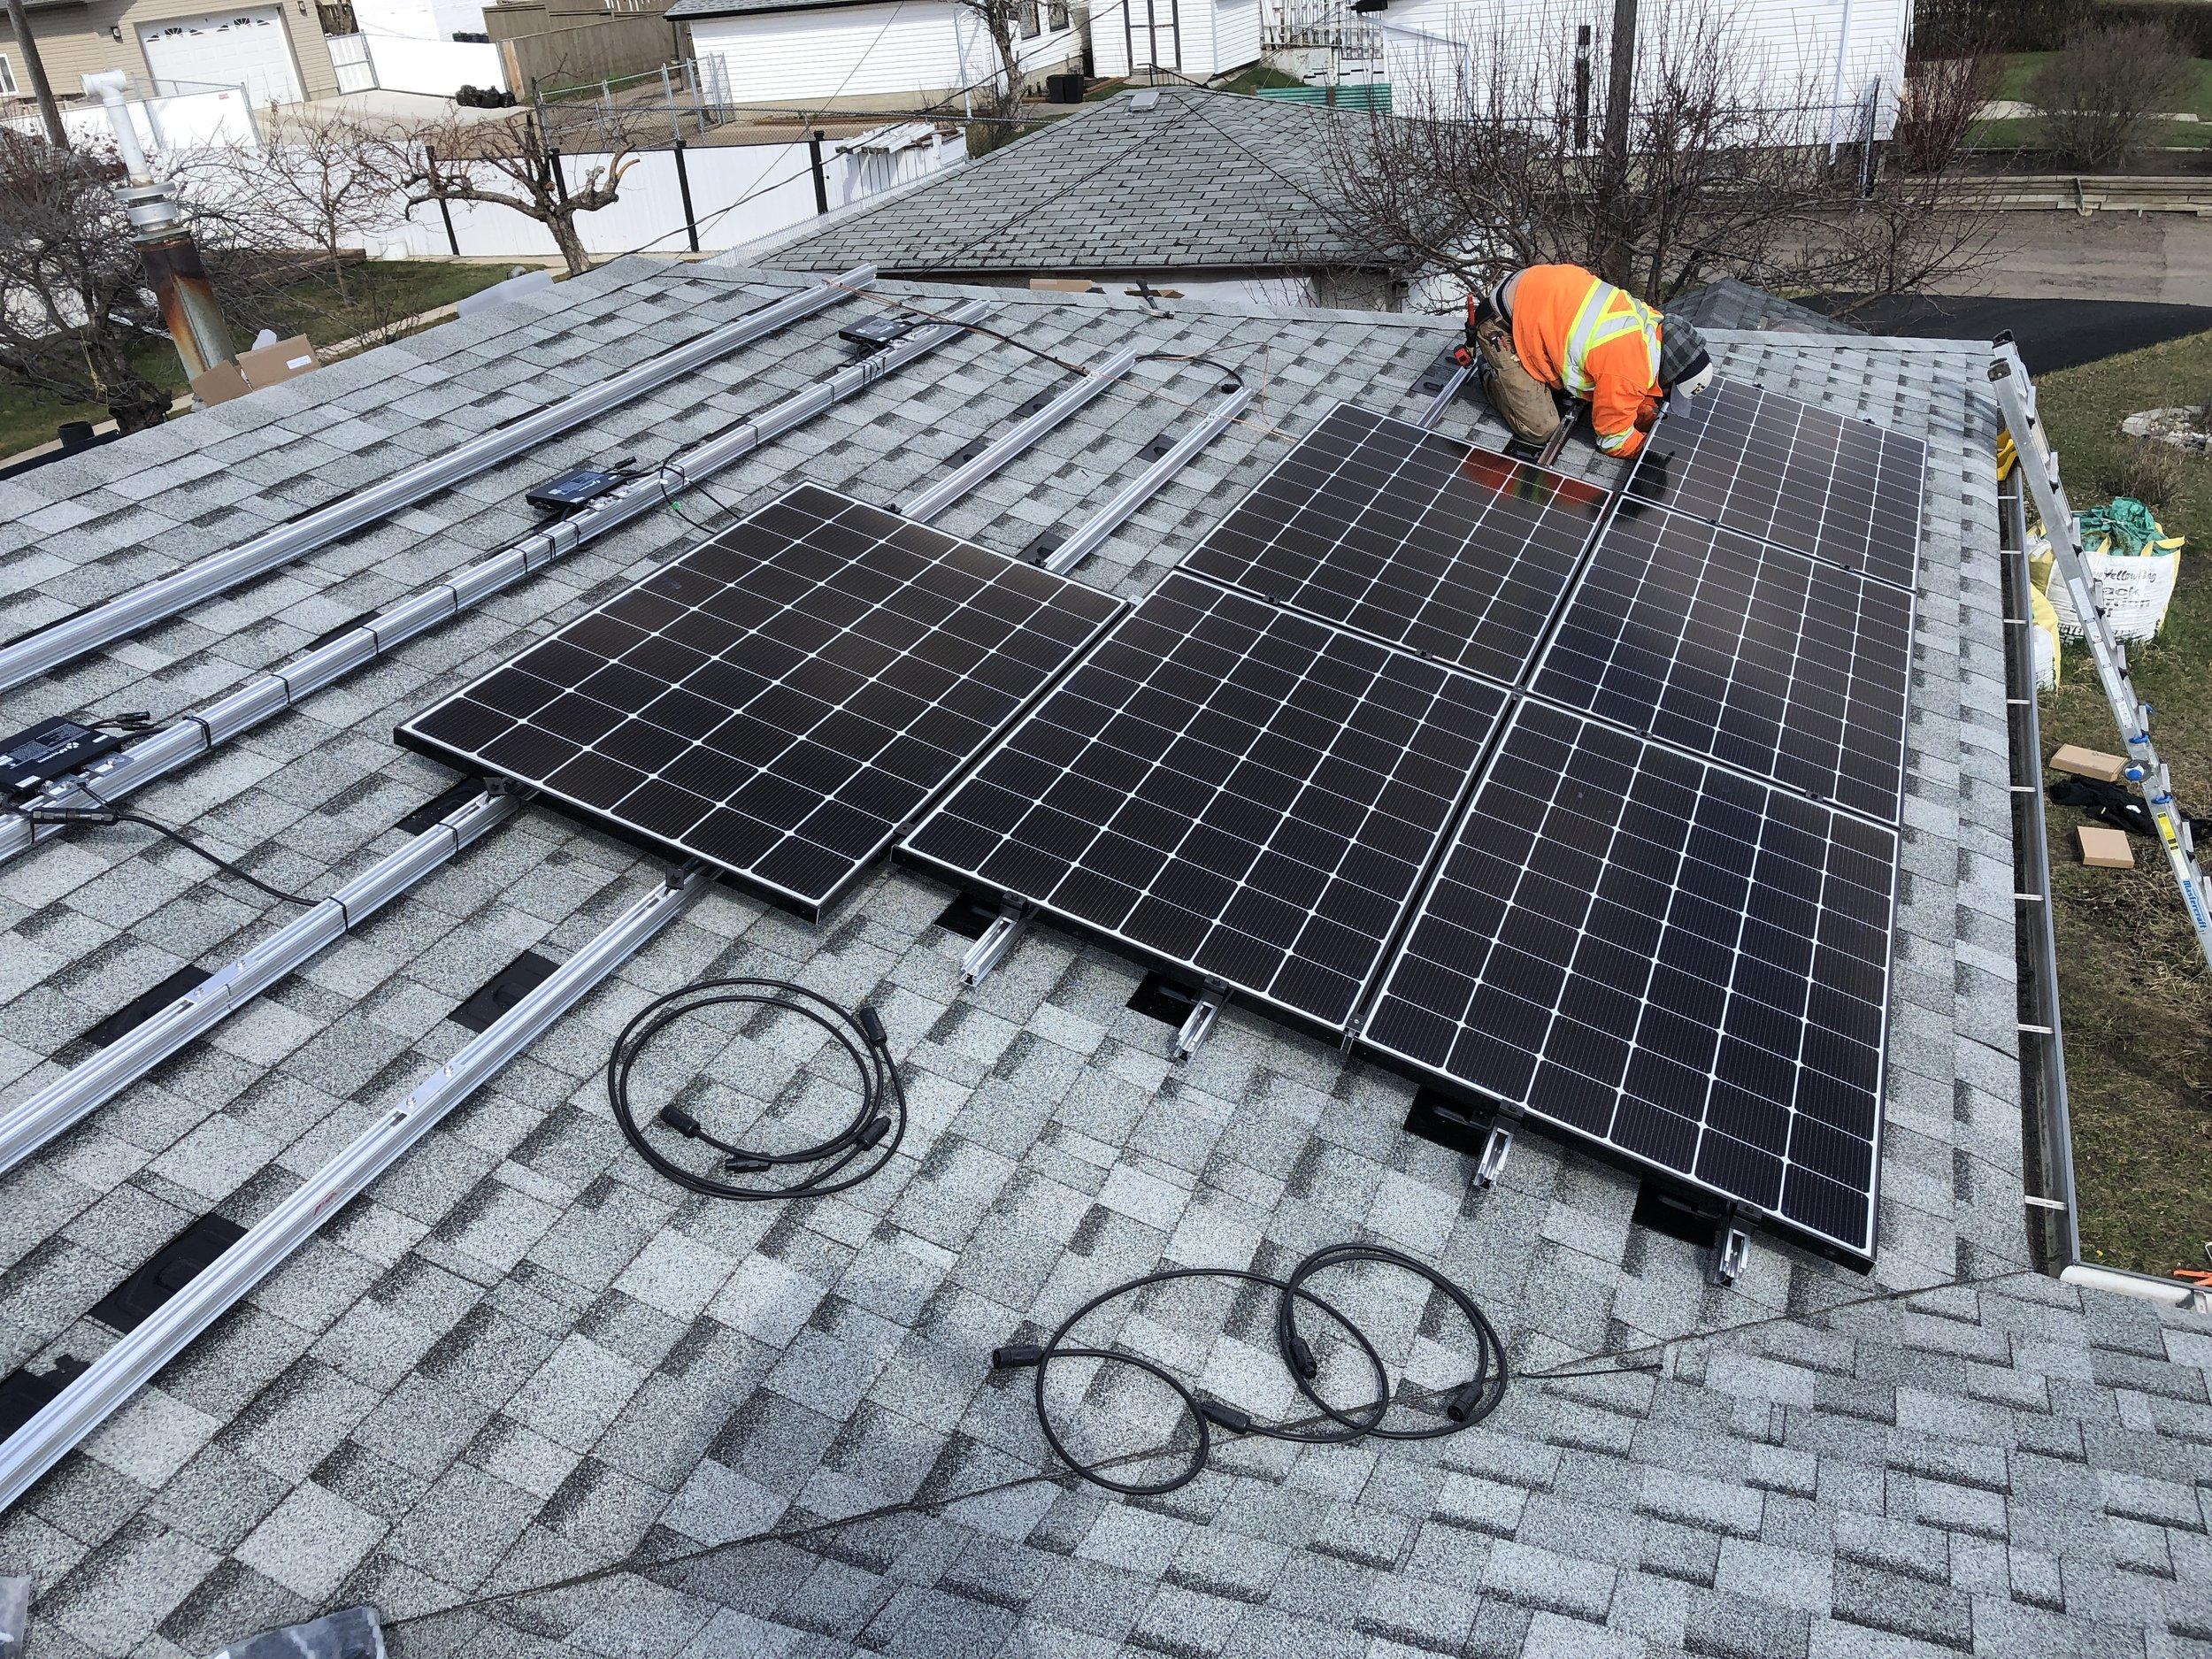 Solar Installation - From permits, engineering and commissioning, to every bit of paperwork - we are trained, qualified and certified to take care of that for you!